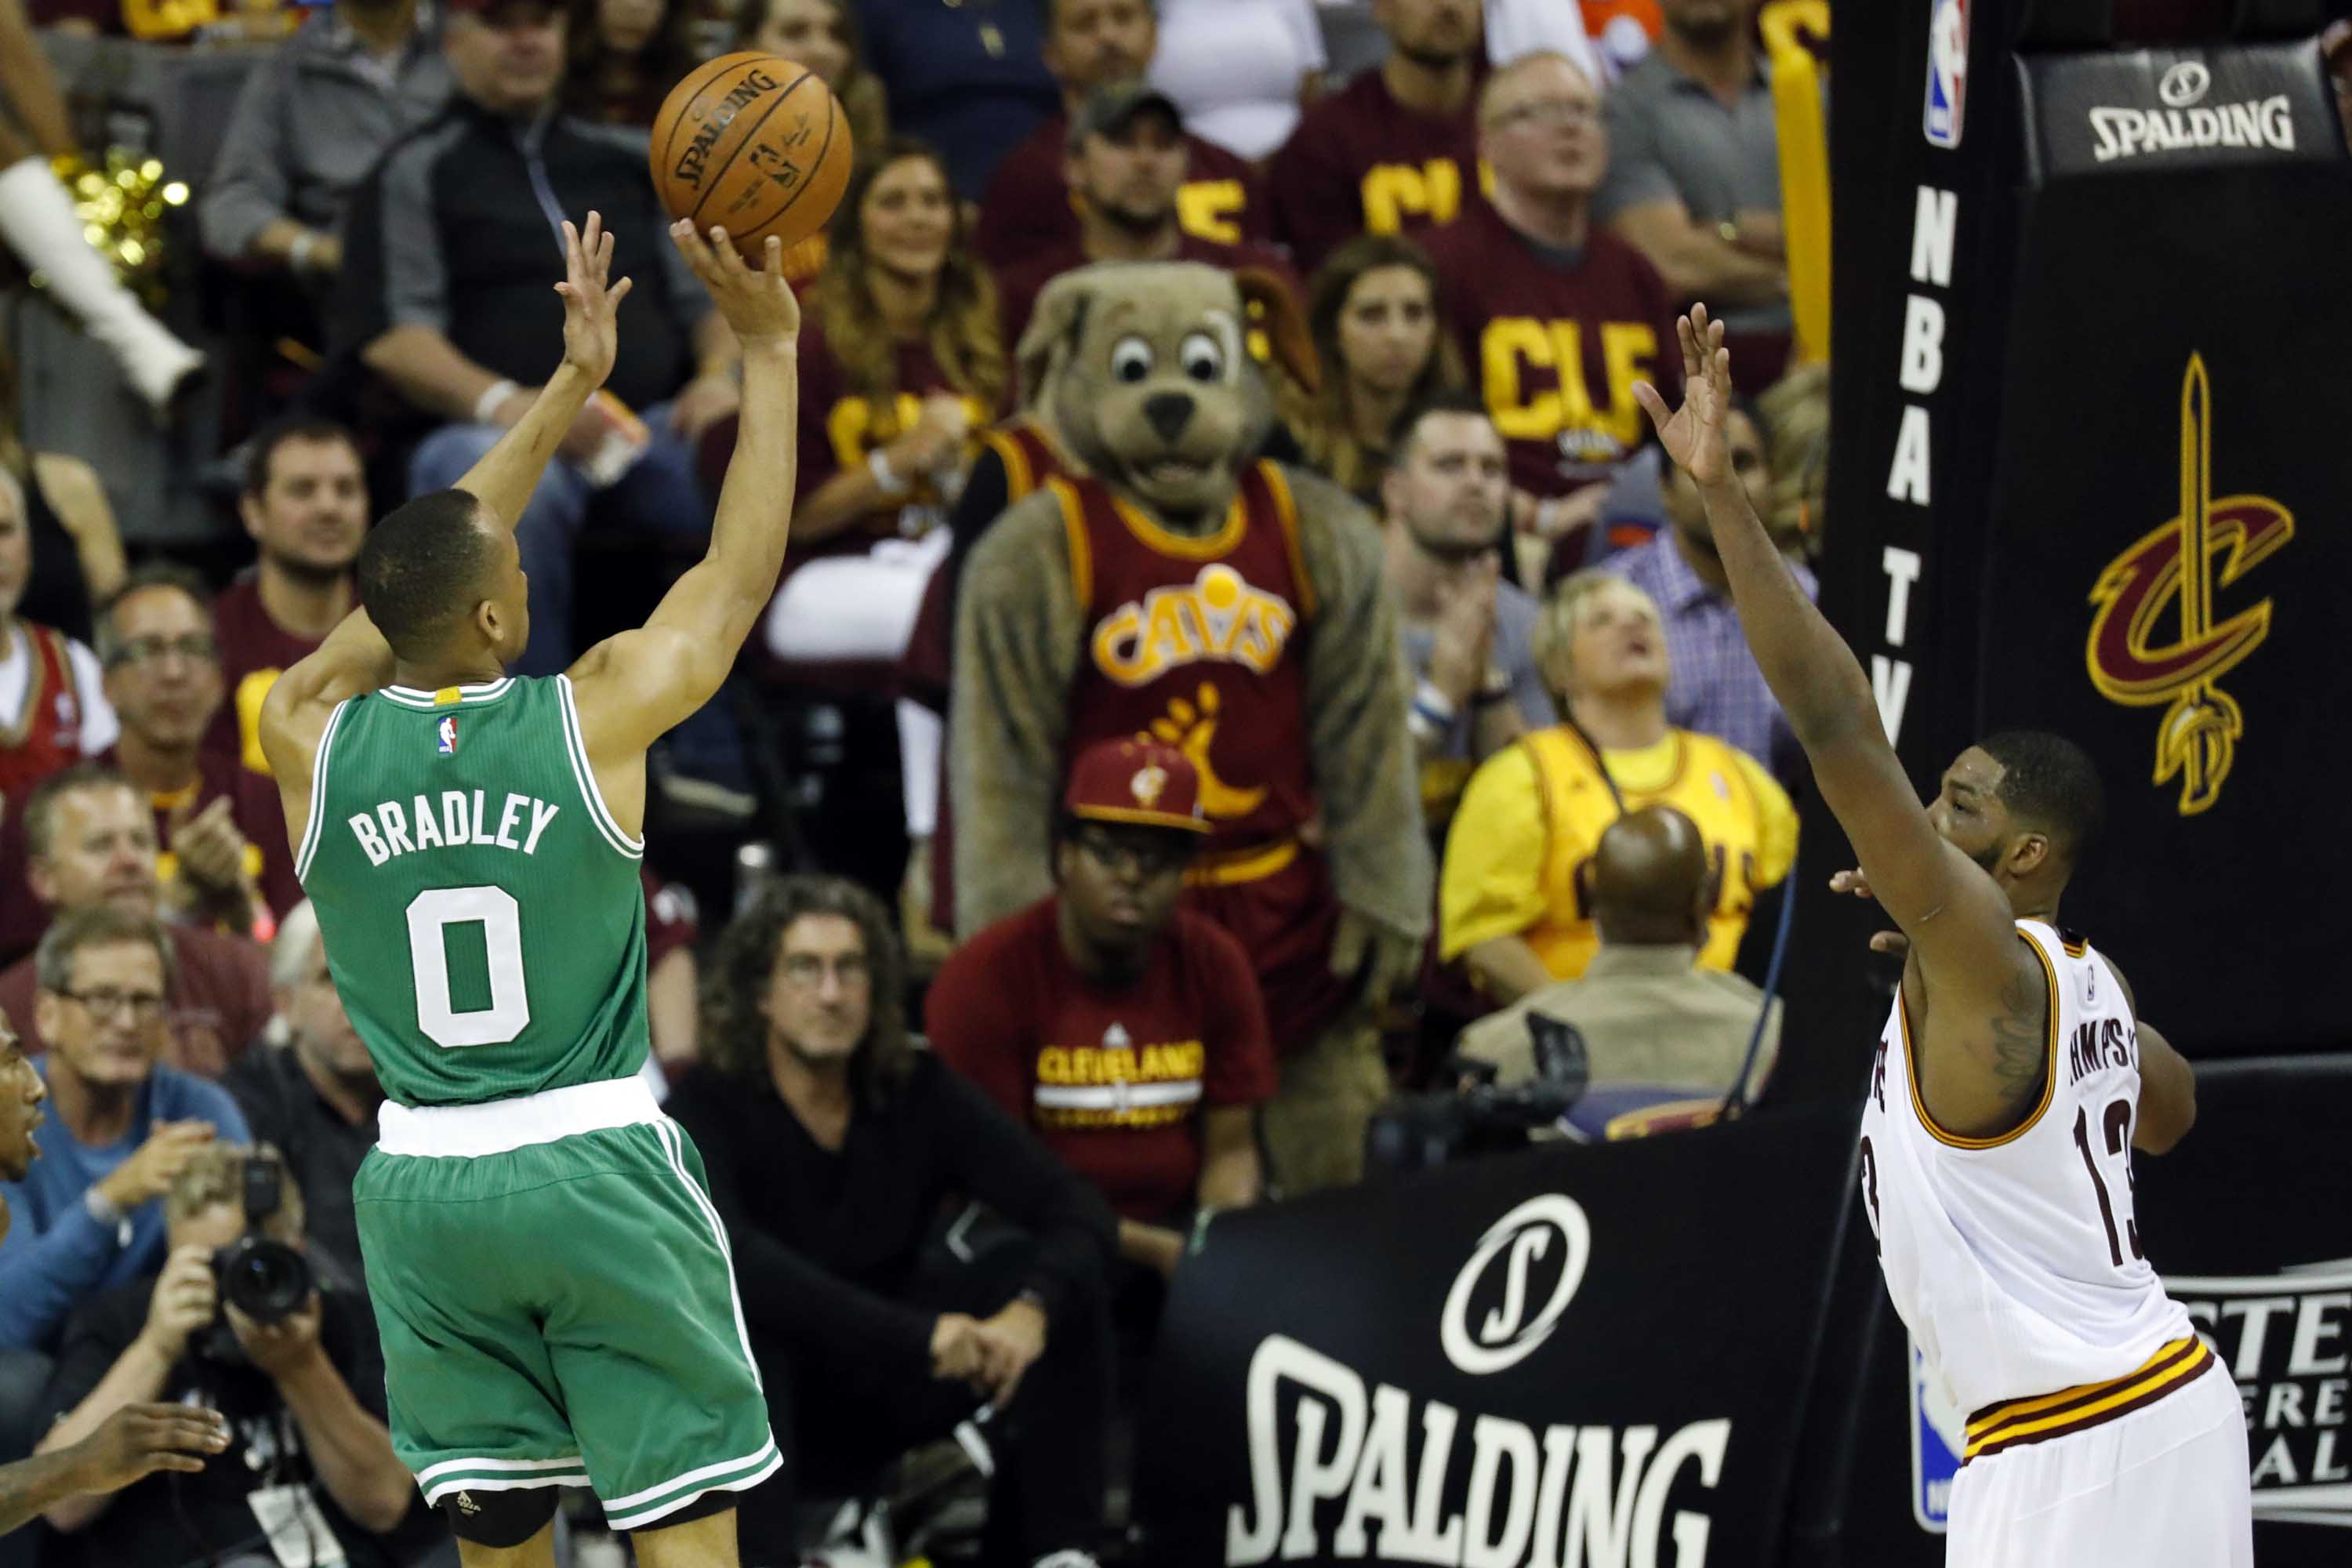 10069158-nba-playoffs-boston-celtics-at-cleveland-cavaliers-1